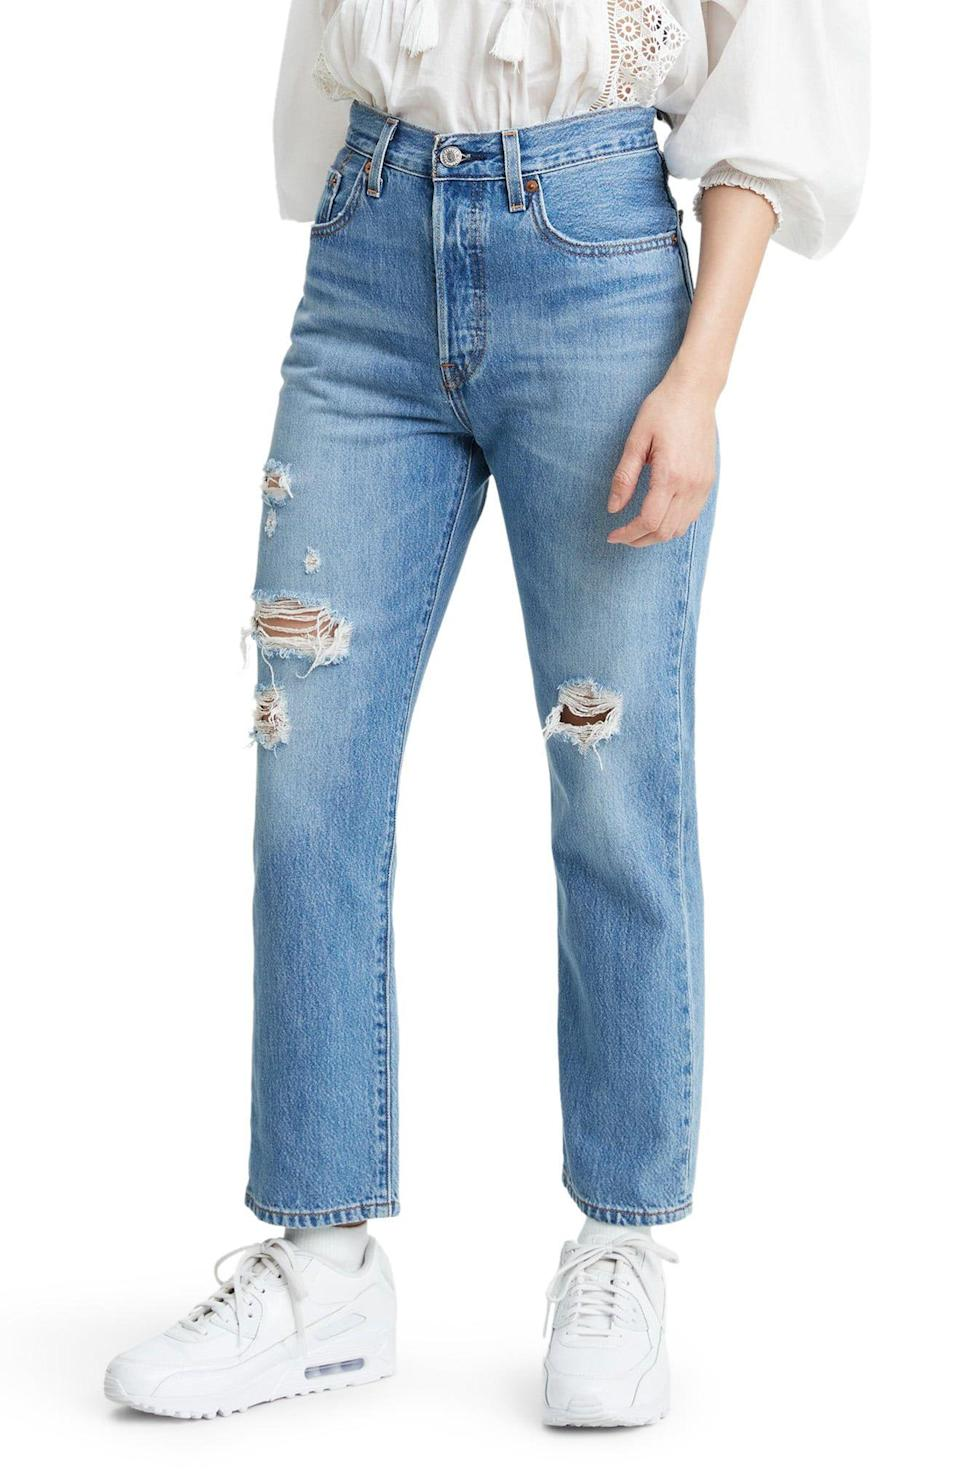 """<p><strong>Levi's</strong></p><p>nordstrom.com</p><p><a href=""""https://go.redirectingat.com?id=74968X1596630&url=https%3A%2F%2Fwww.nordstrom.com%2Fs%2Flevis-501-ripped-high-waist-crop-straight-leg-jeans-sansome-light%2F5605523&sref=https%3A%2F%2Fwww.redbookmag.com%2Flife%2Fg34807129%2Fnordstrom-black-friday-cyber-monday-deals-2020%2F"""" rel=""""nofollow noopener"""" target=""""_blank"""" data-ylk=""""slk:Shop Now"""" class=""""link rapid-noclick-resp"""">Shop Now</a></p><p><strong><del>$98</del> $63.70 (35% off)</strong></p><p>A medium-wash pair of high-waisted jeans is always a good go-to—even more so when it's on sale. </p>"""